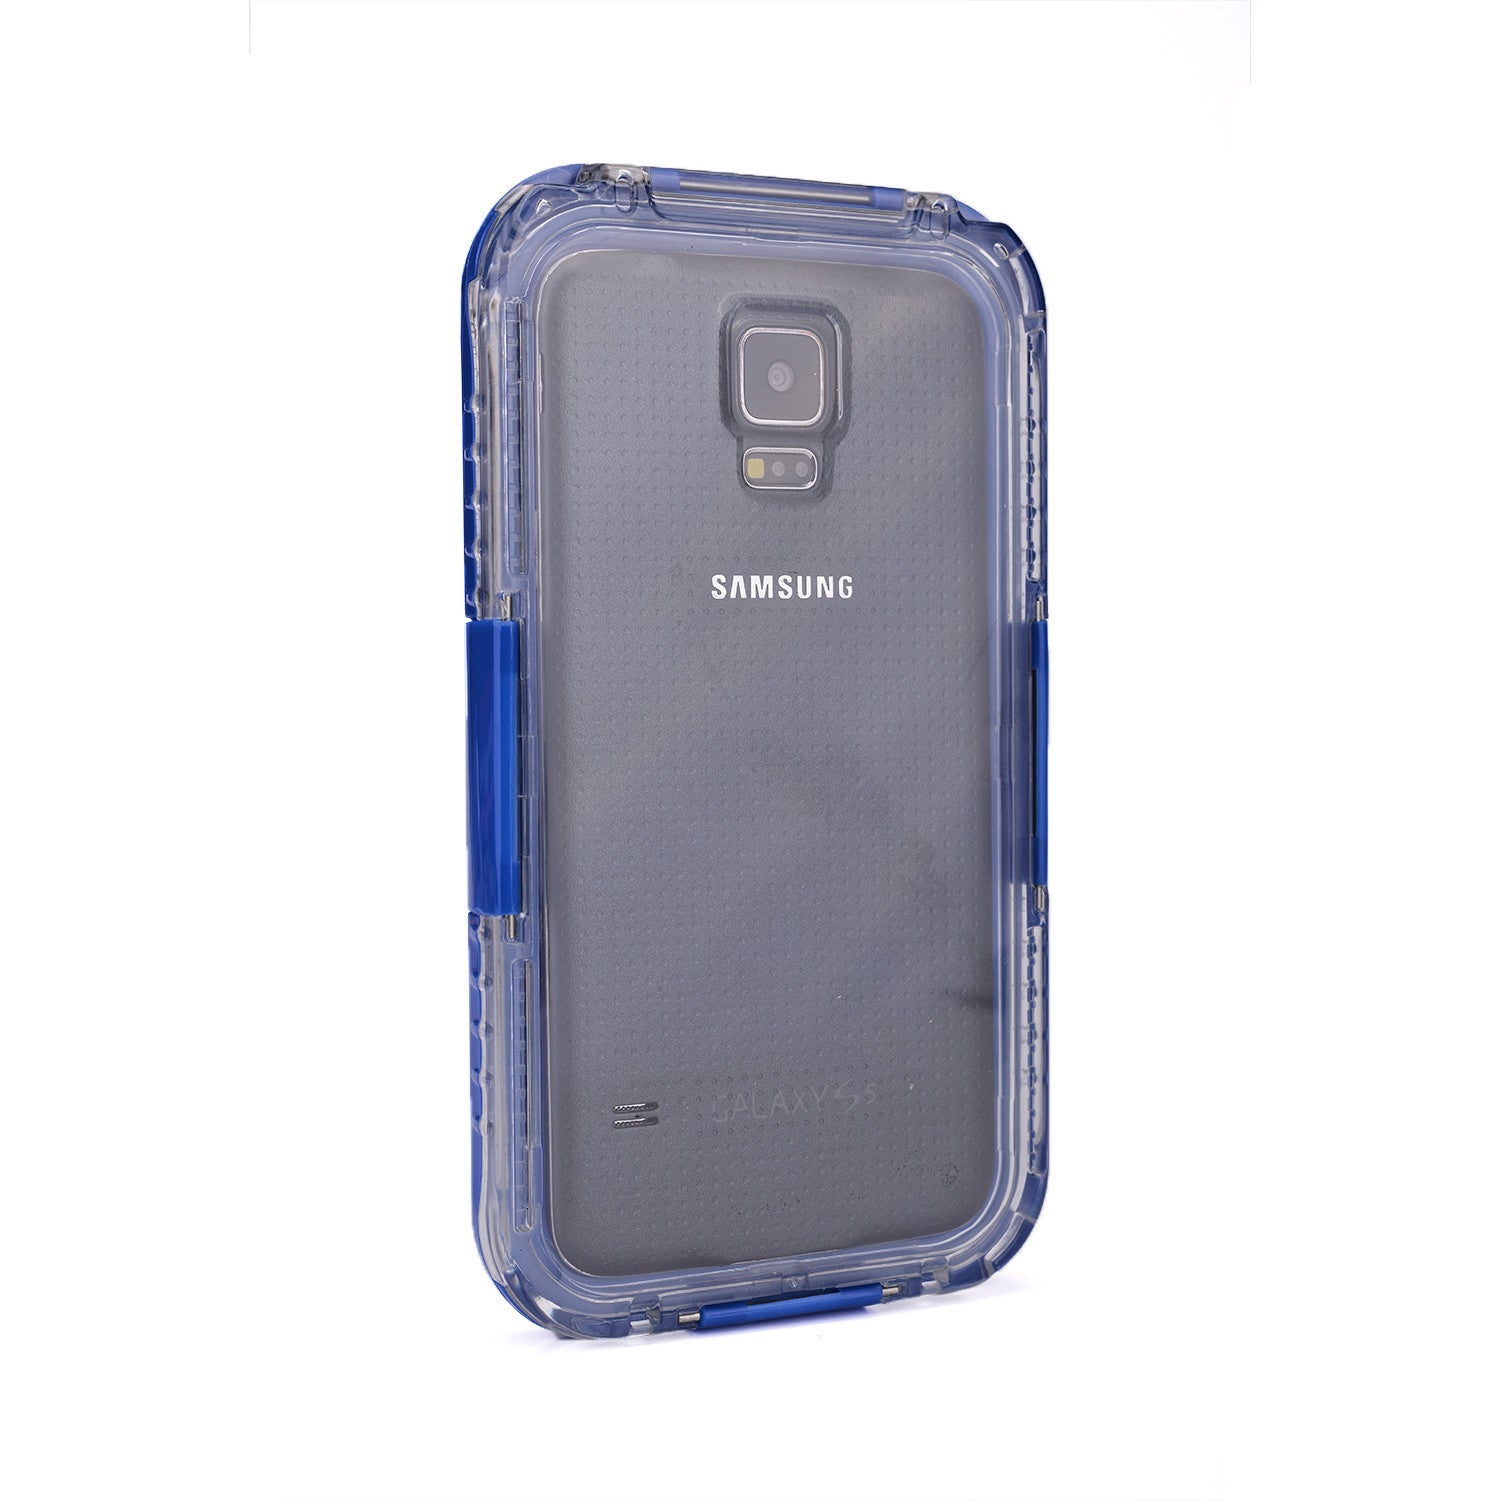 Cooper dive rugged waterproof case review specs and buy online cooper cases - Samsung dive galaxy s3 ...